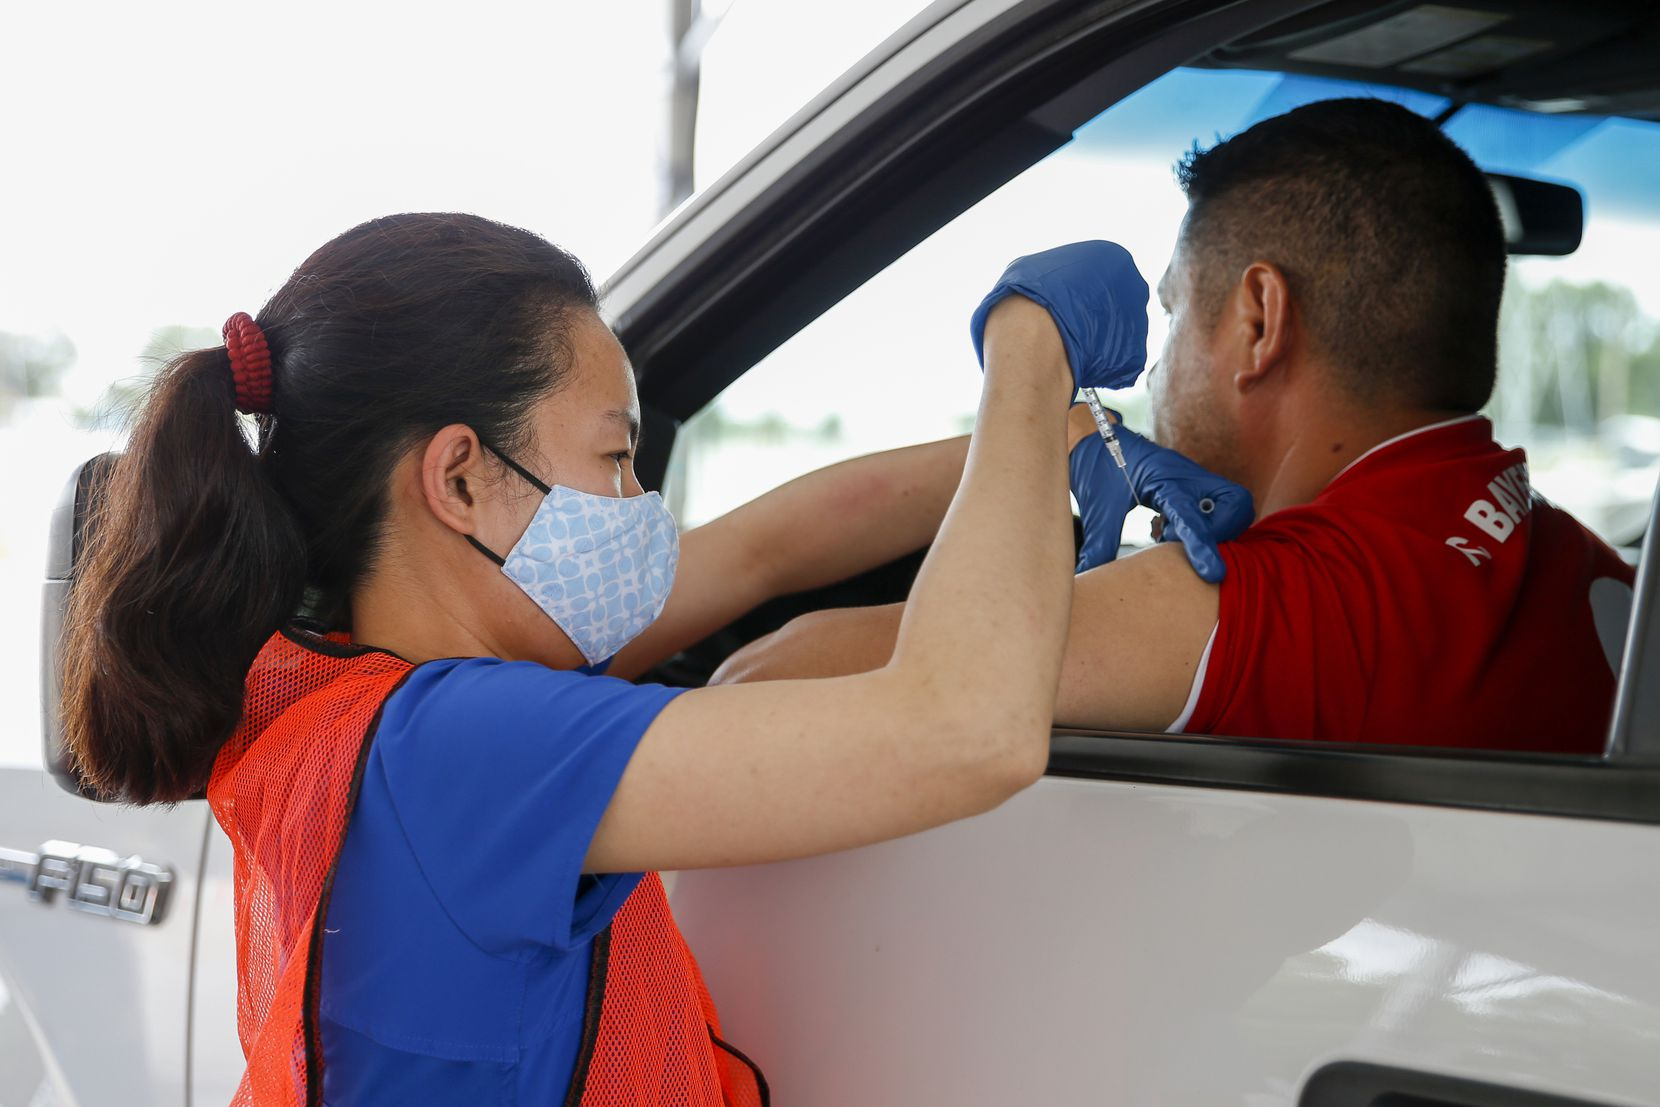 Registered nurse Christine Atayde and an unidentified man help lower the number of unvaccinated by one.